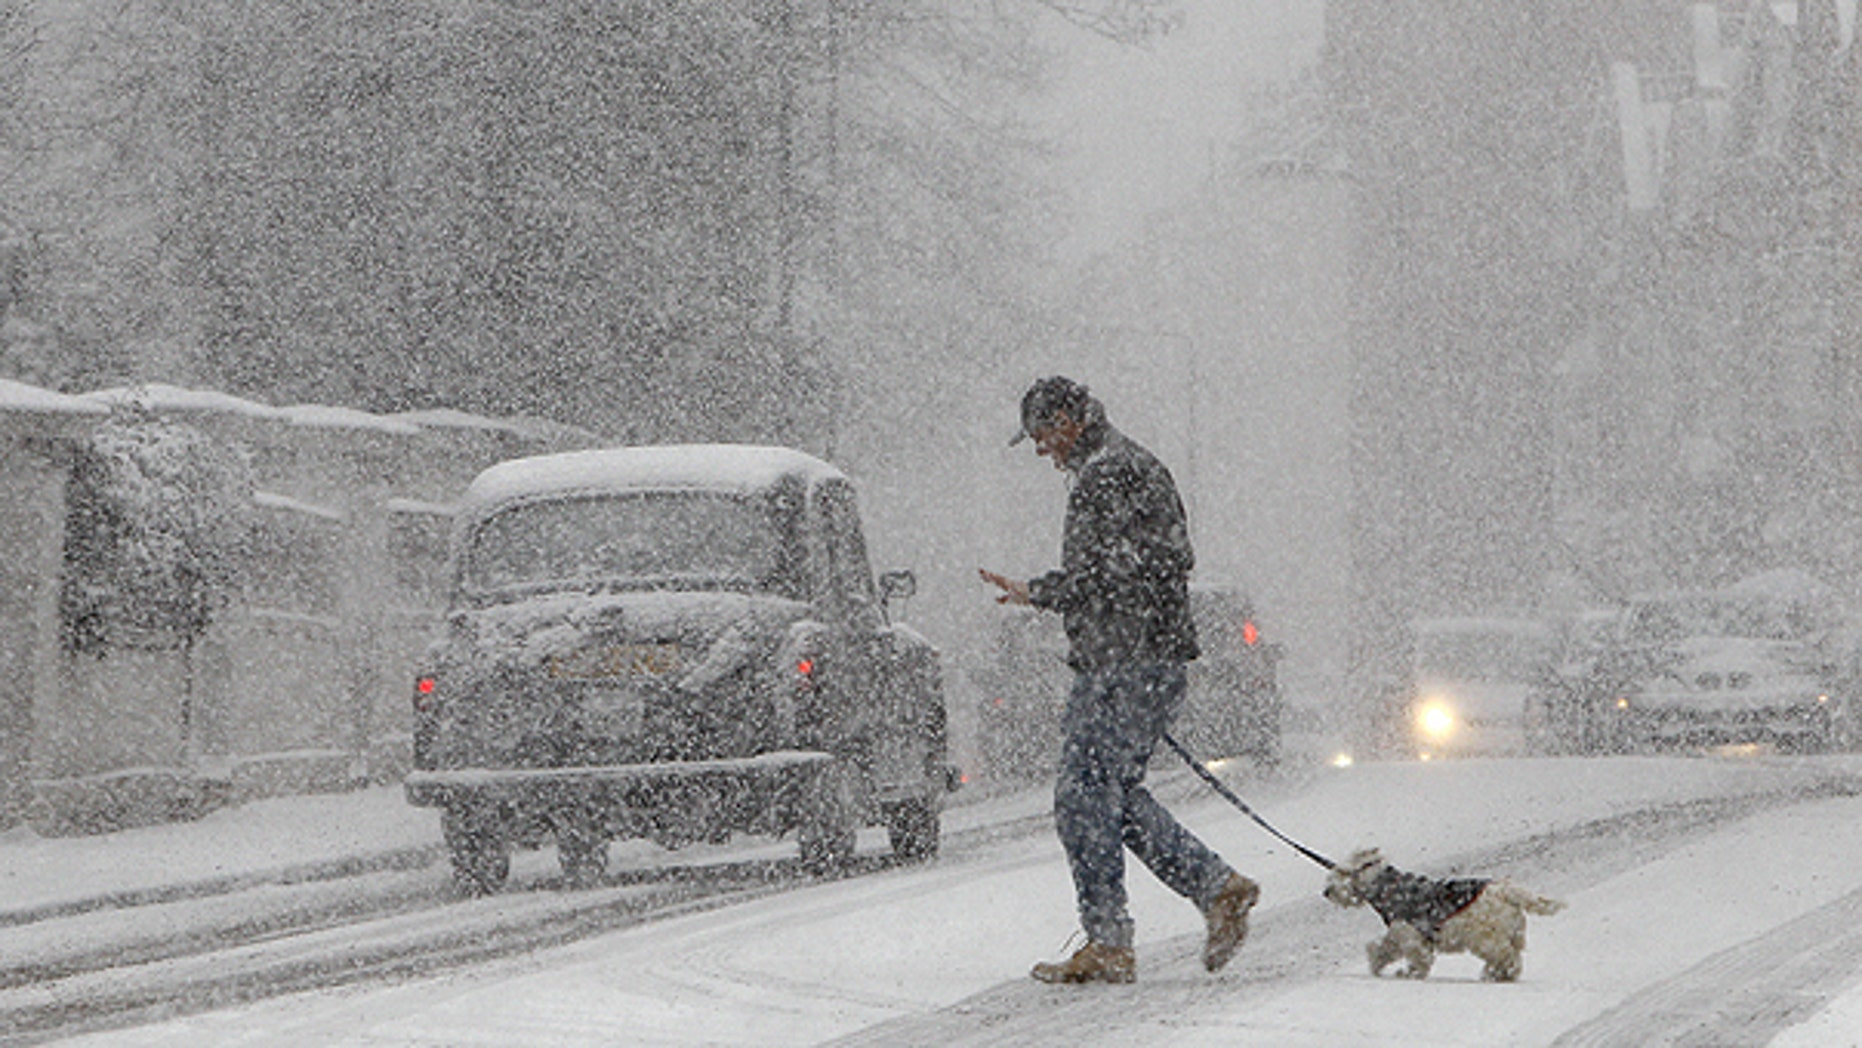 Dec. 18: A pedestrian walks a dog during a snow-fall in central London.